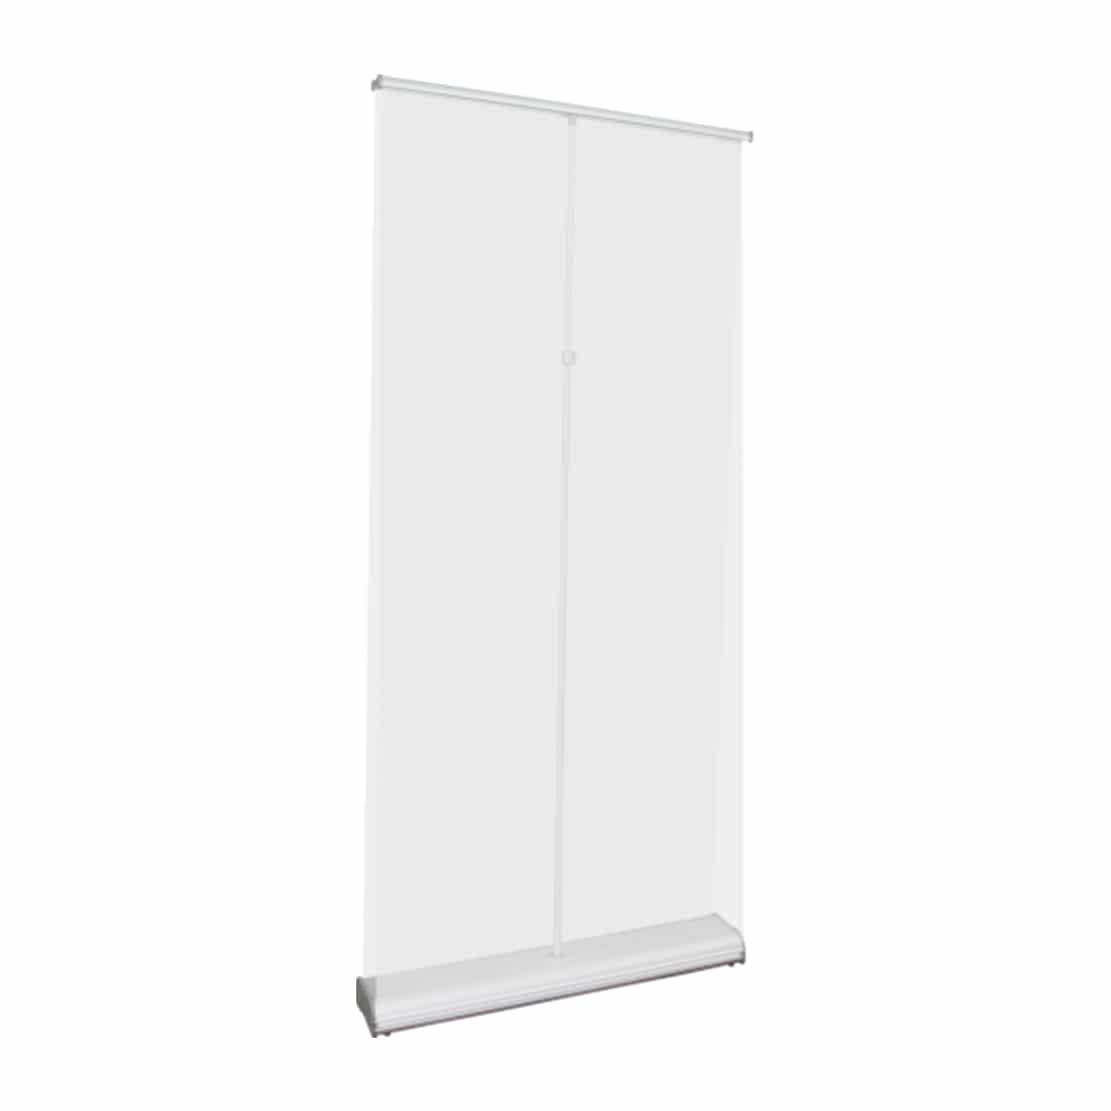 orient double-sided banner stand showing pole and top bar